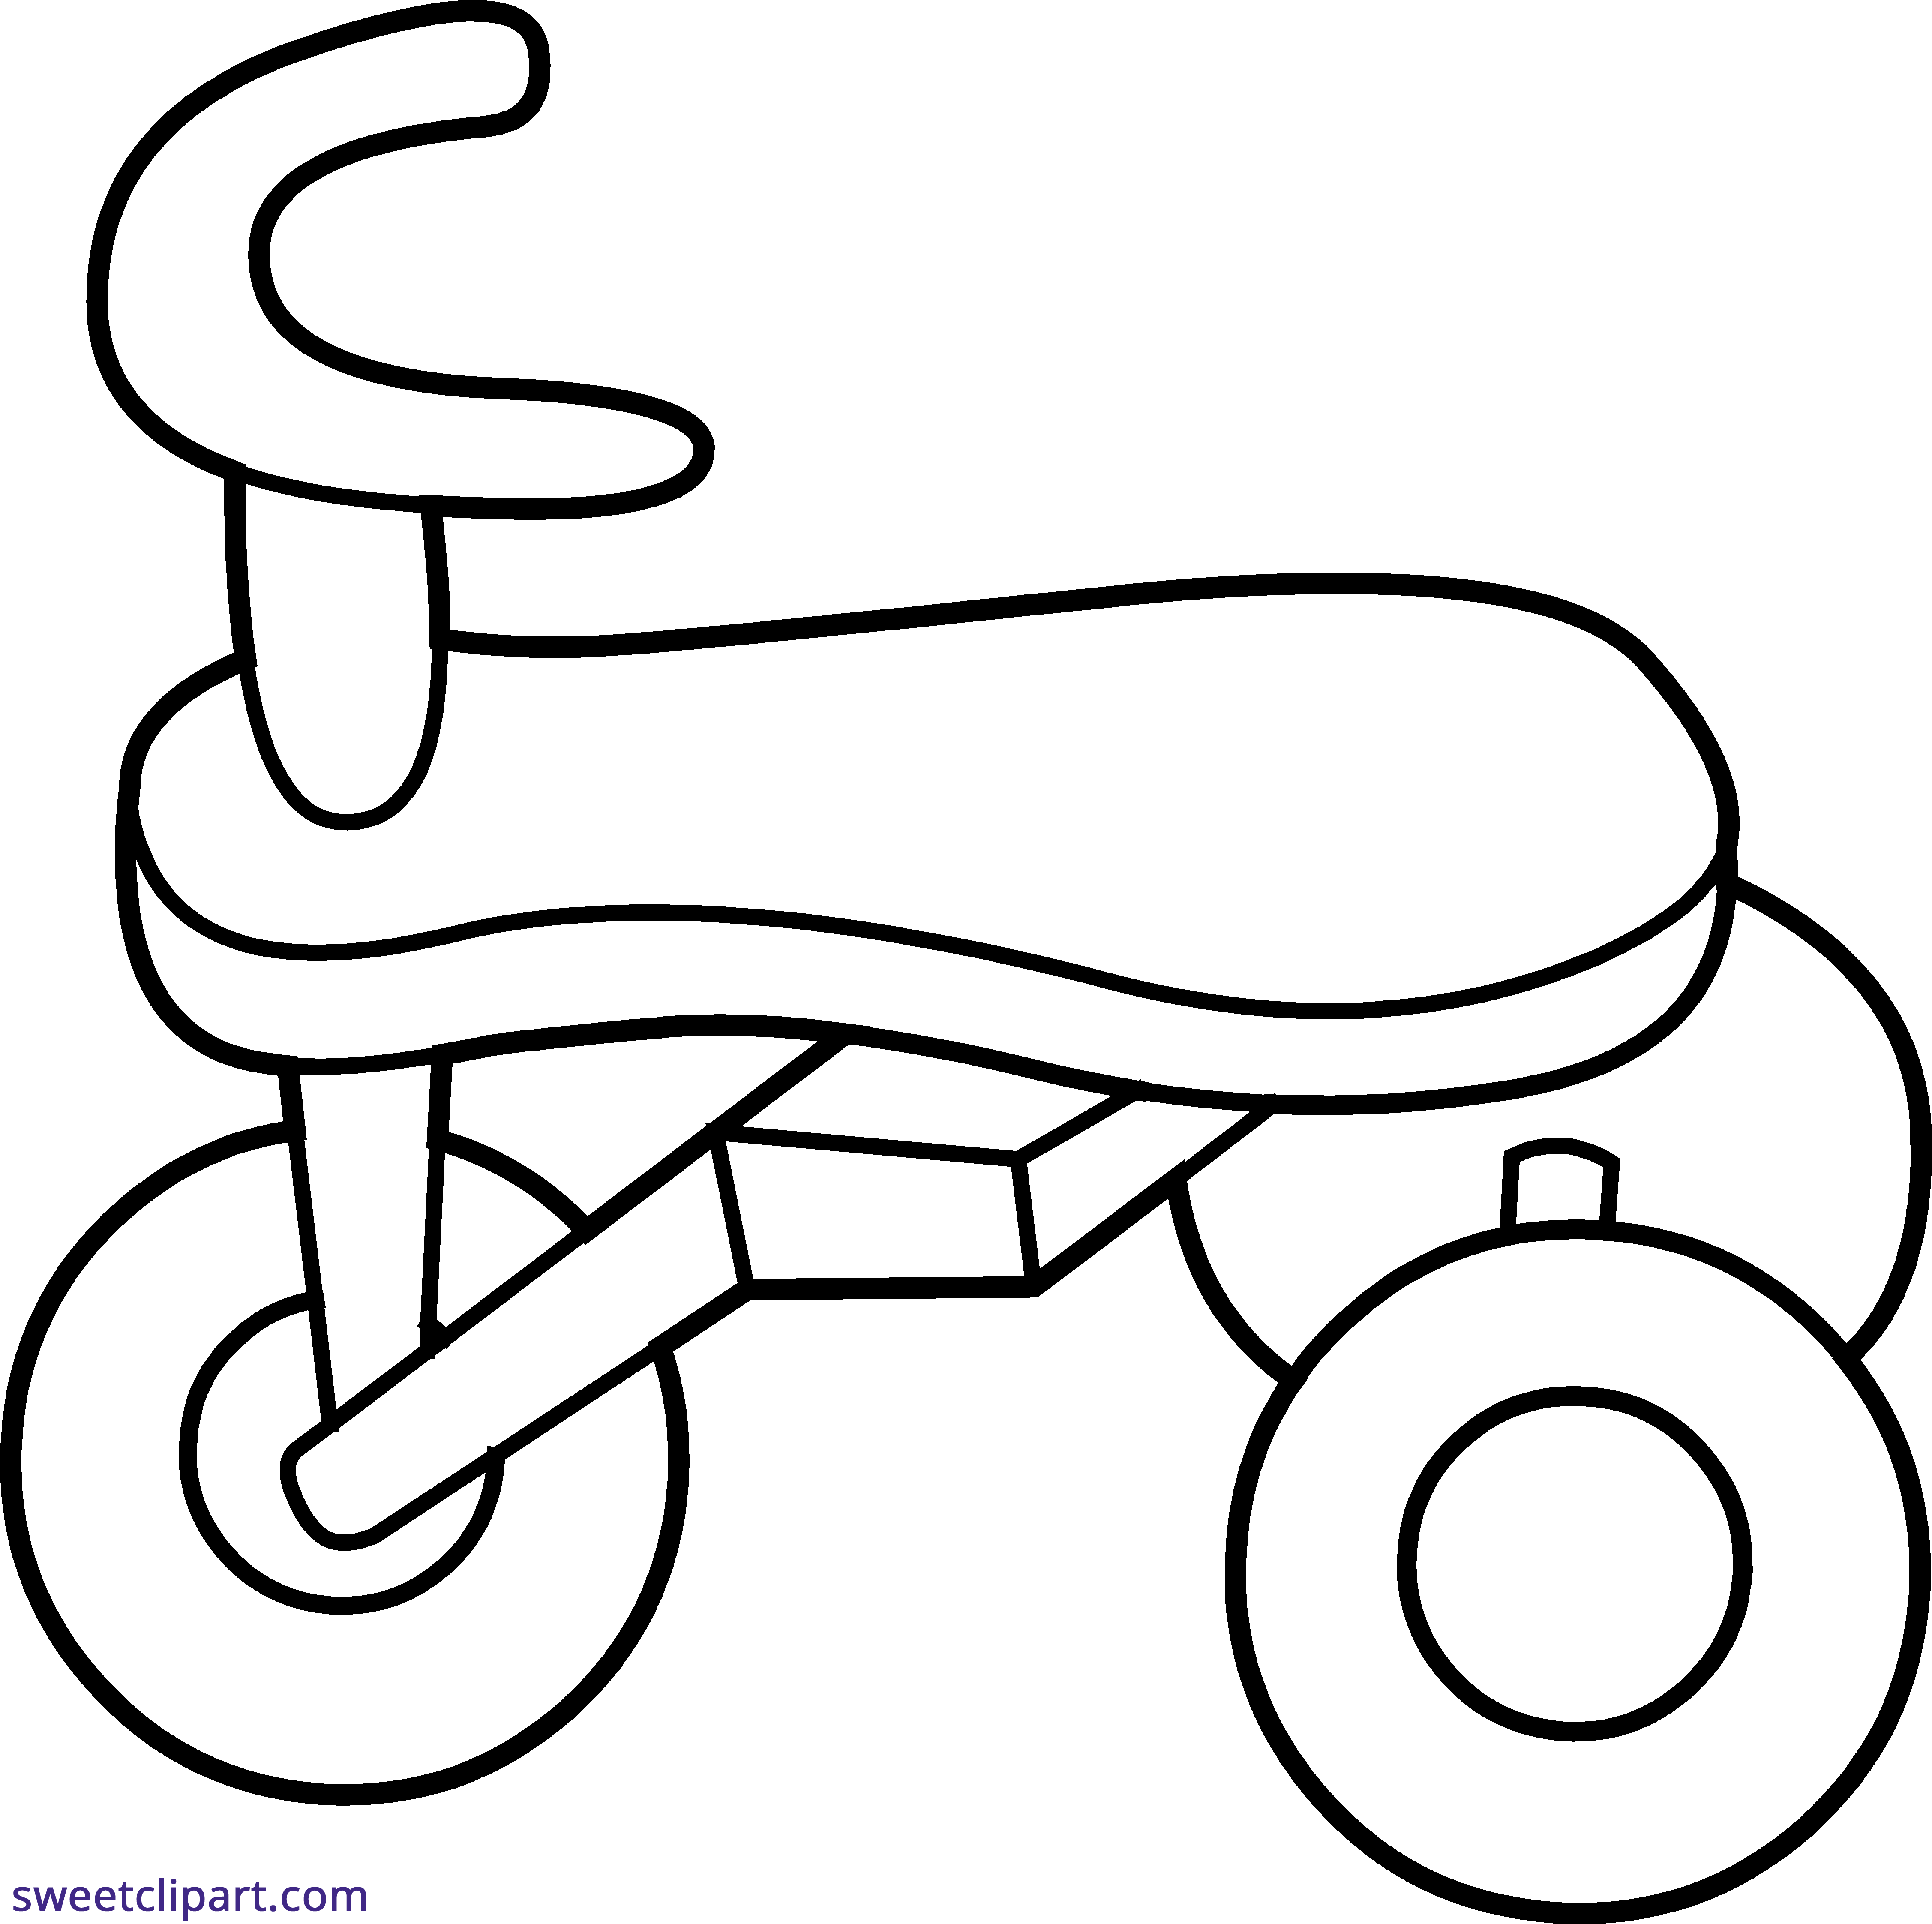 Line art sweet clip. Tricycle clipart jpg black and white library